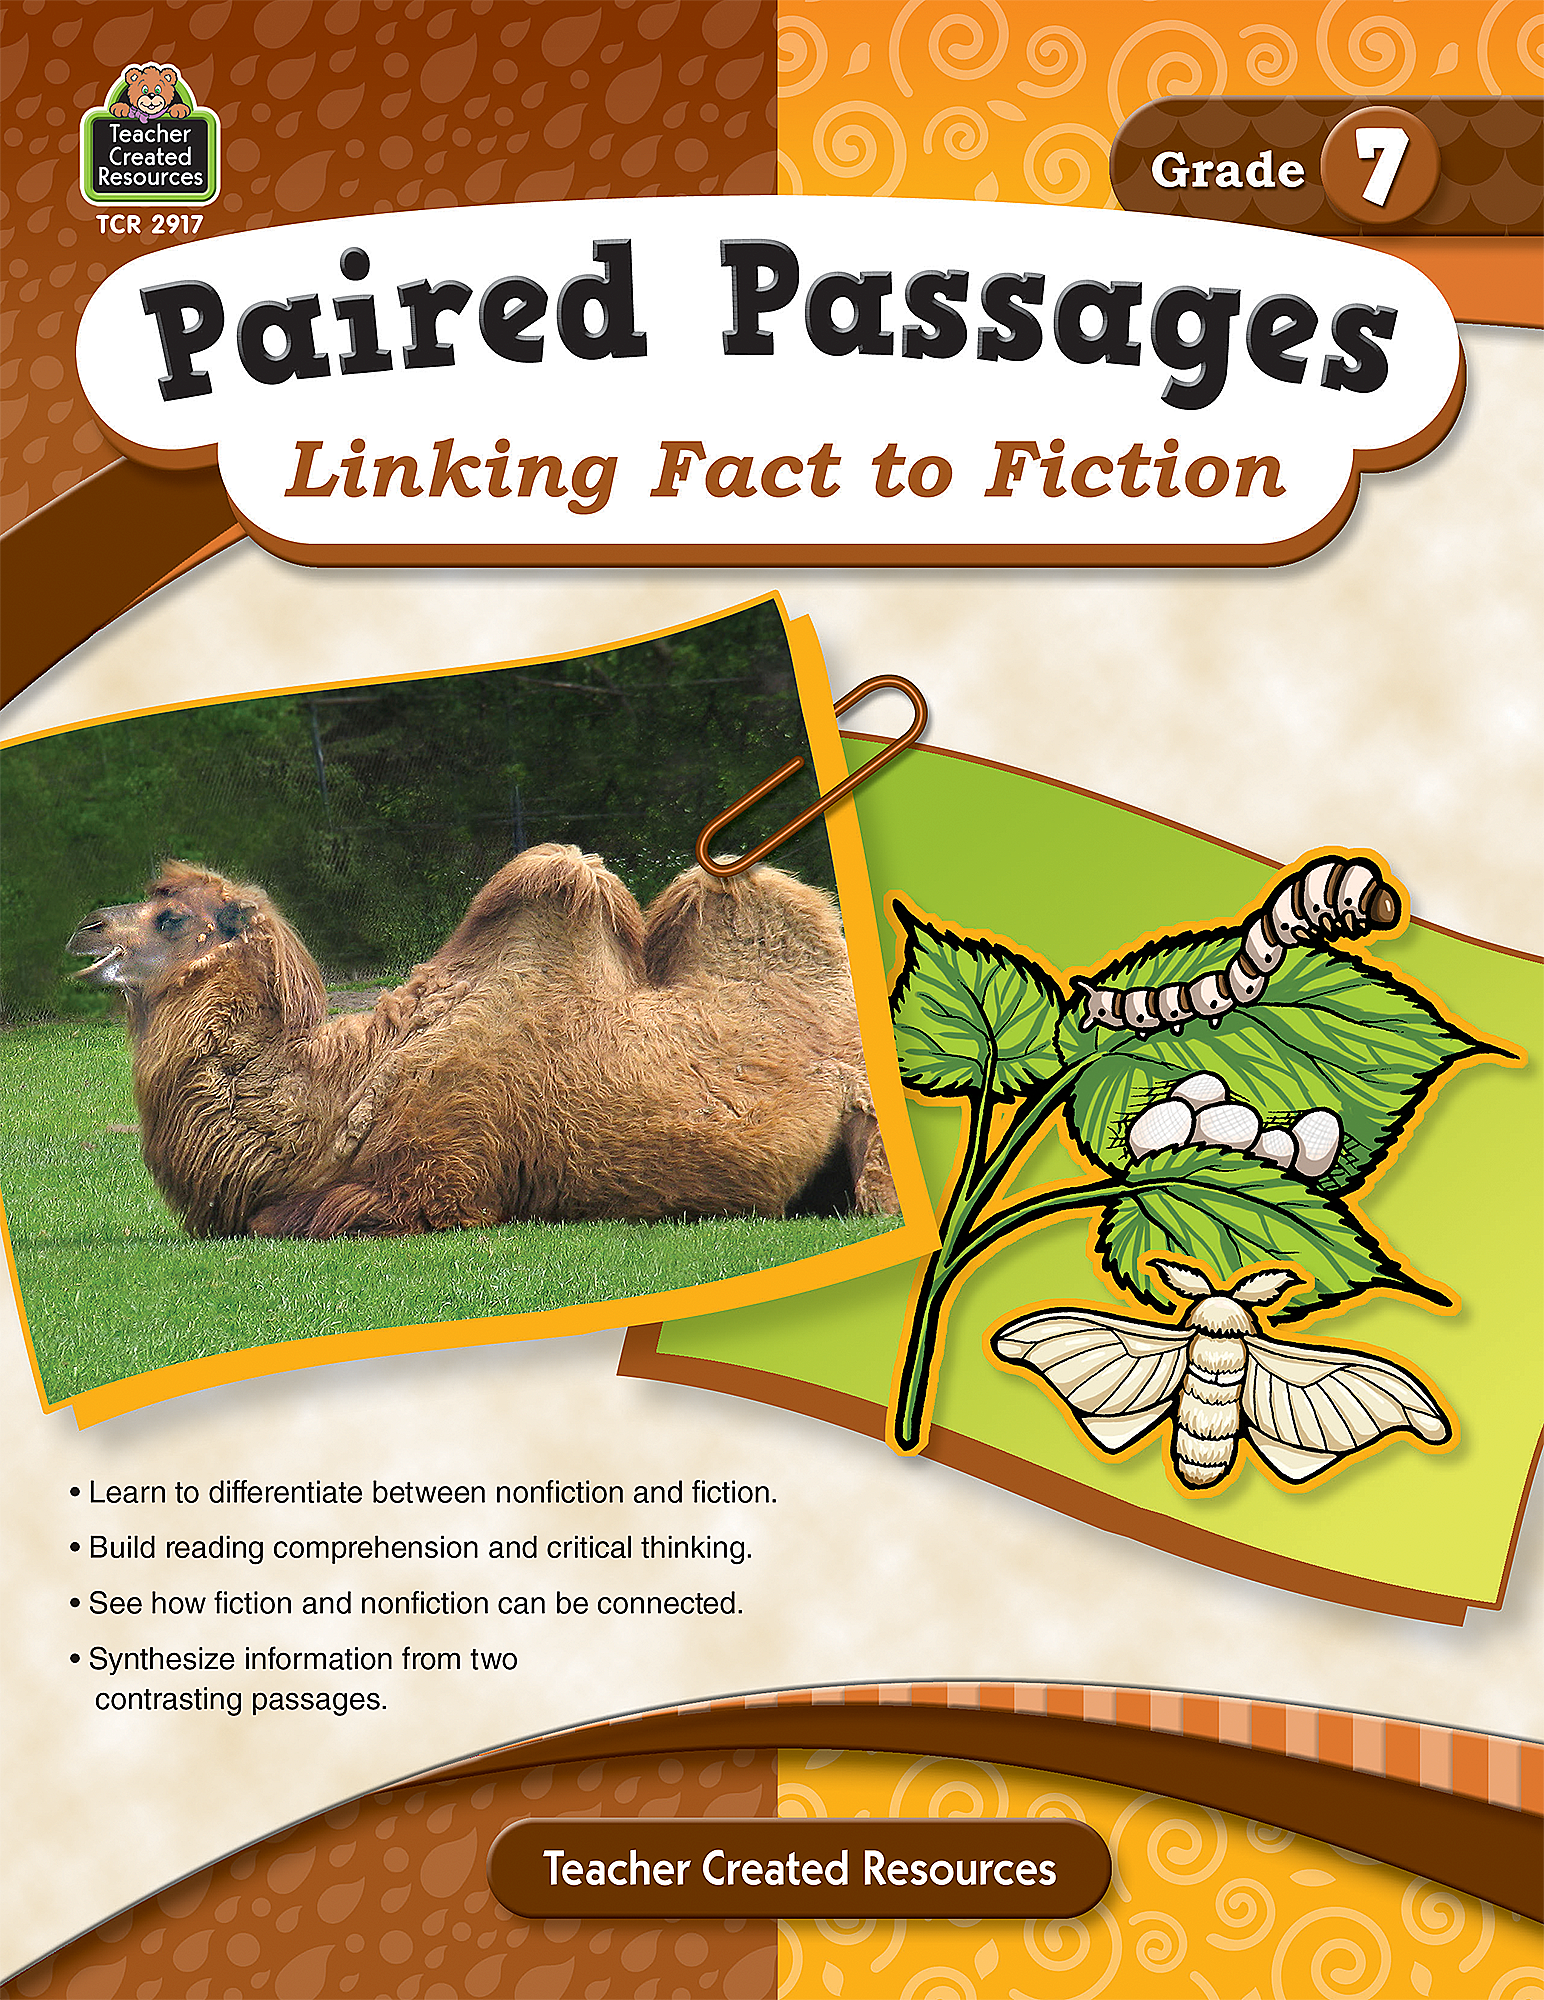 Paired Passages: Linking Fact to Fiction Grade 7 - TCR2917 ...